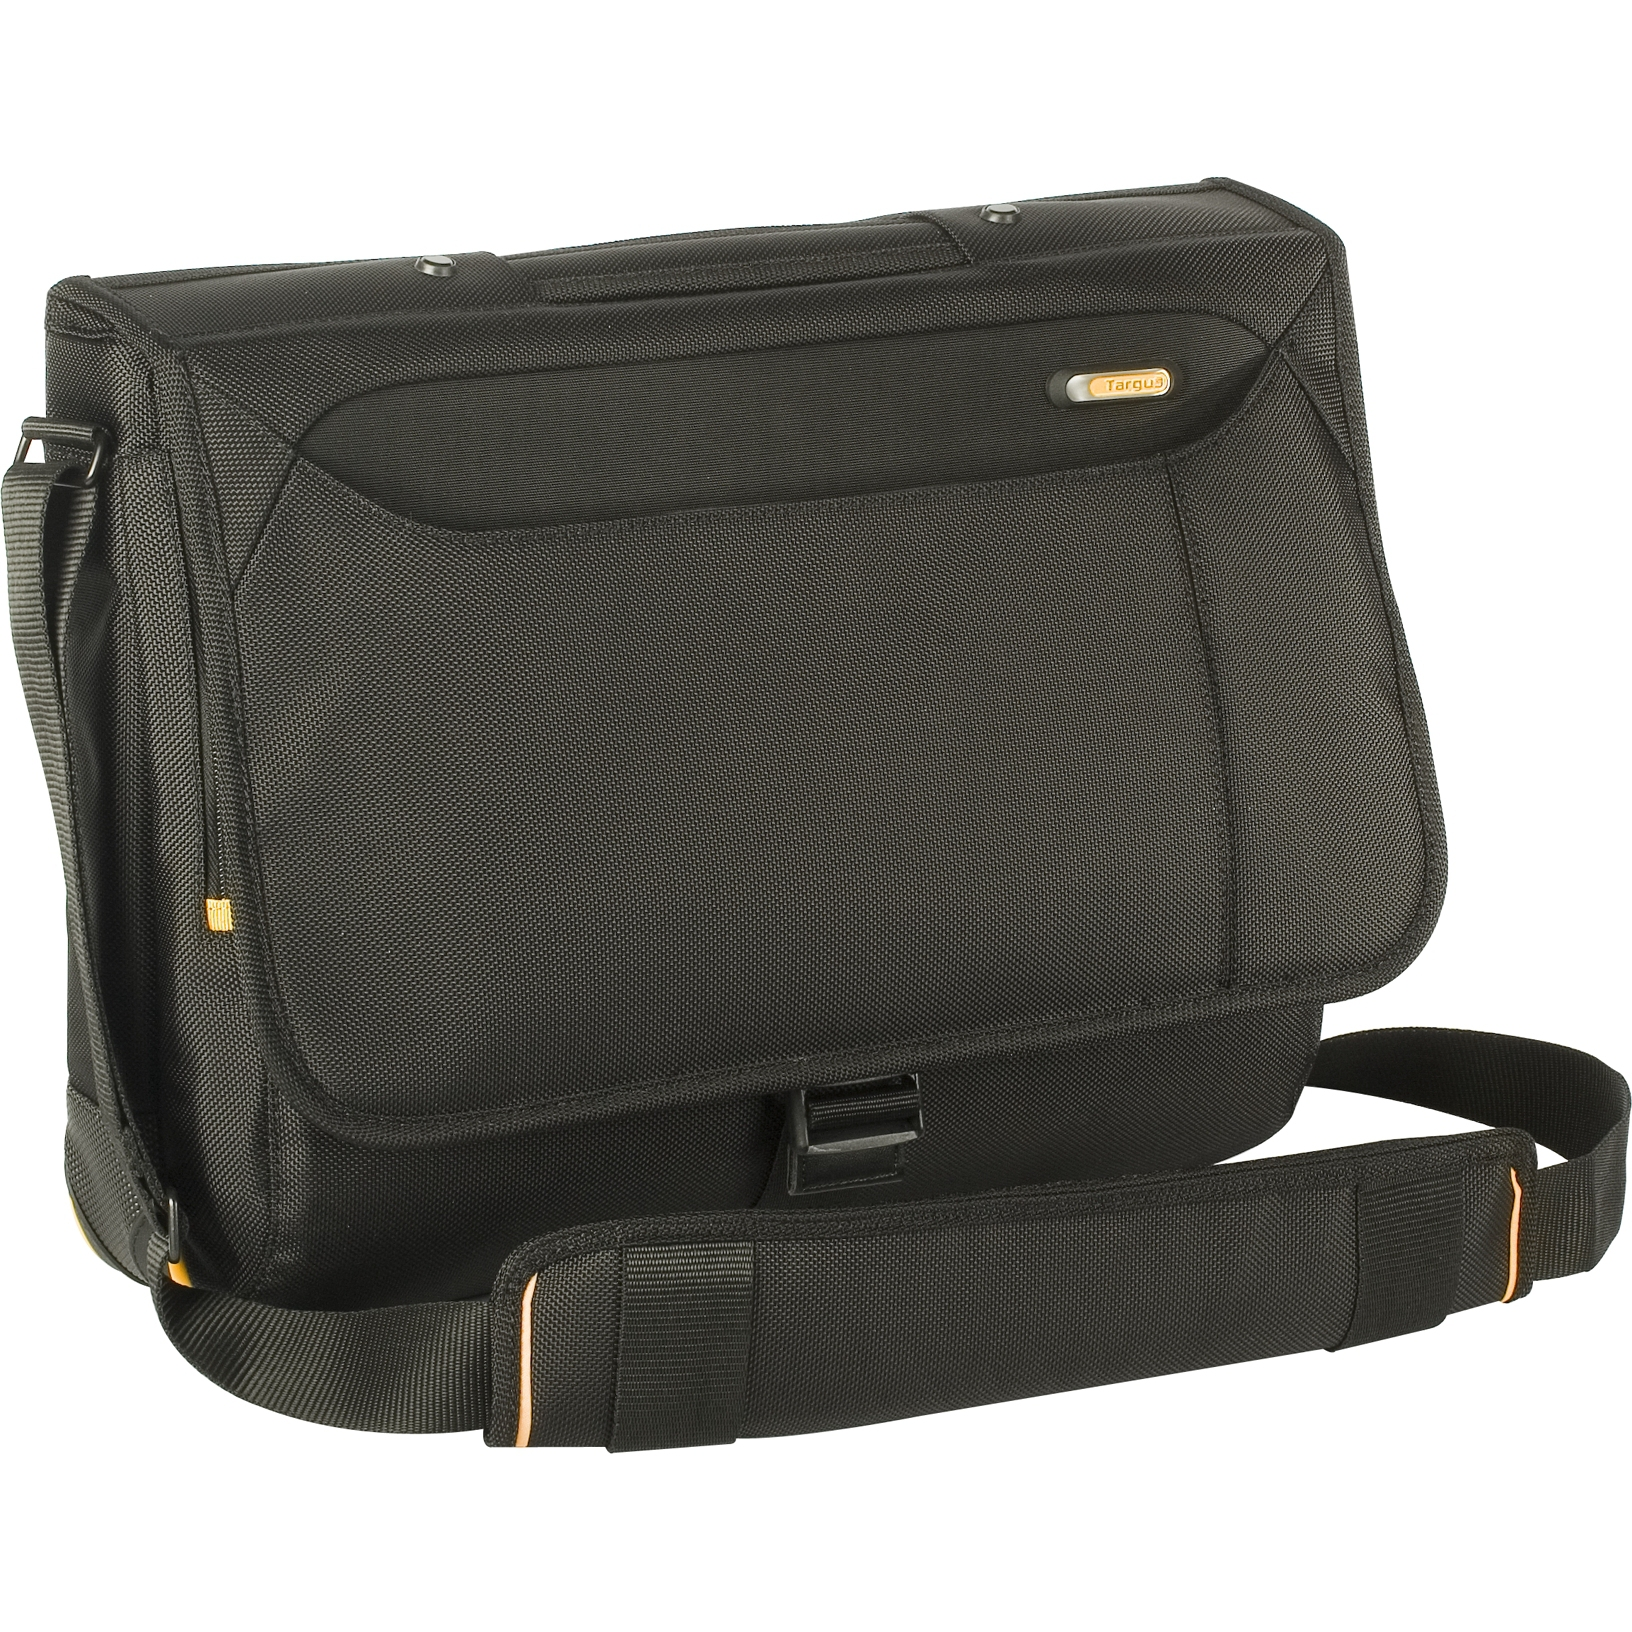 Meridian Messenger Case - Notebook carrying case - 15.6 inch - black